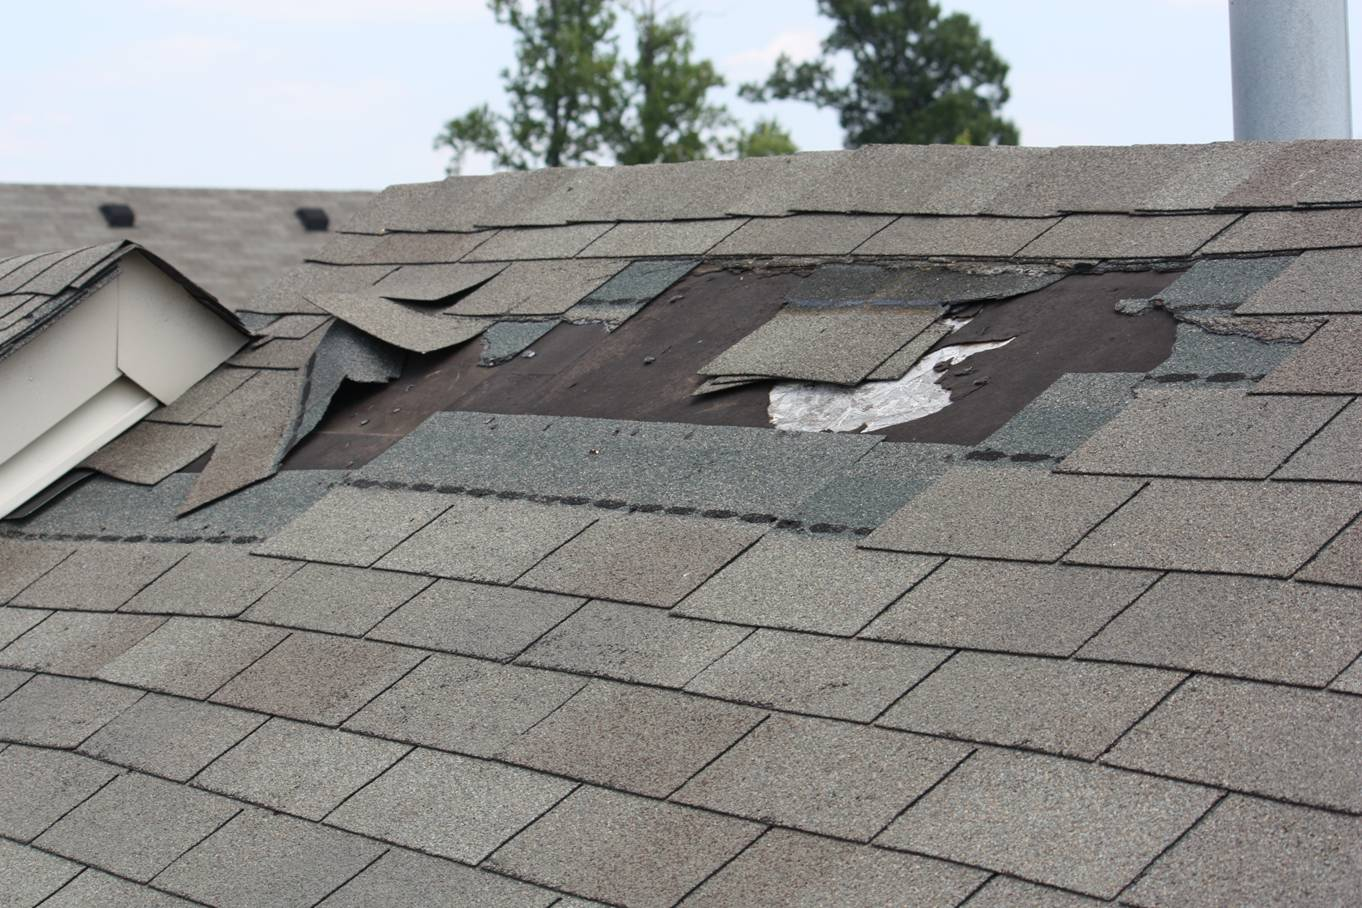 how to repair roof leak yourself step by step healthy flat